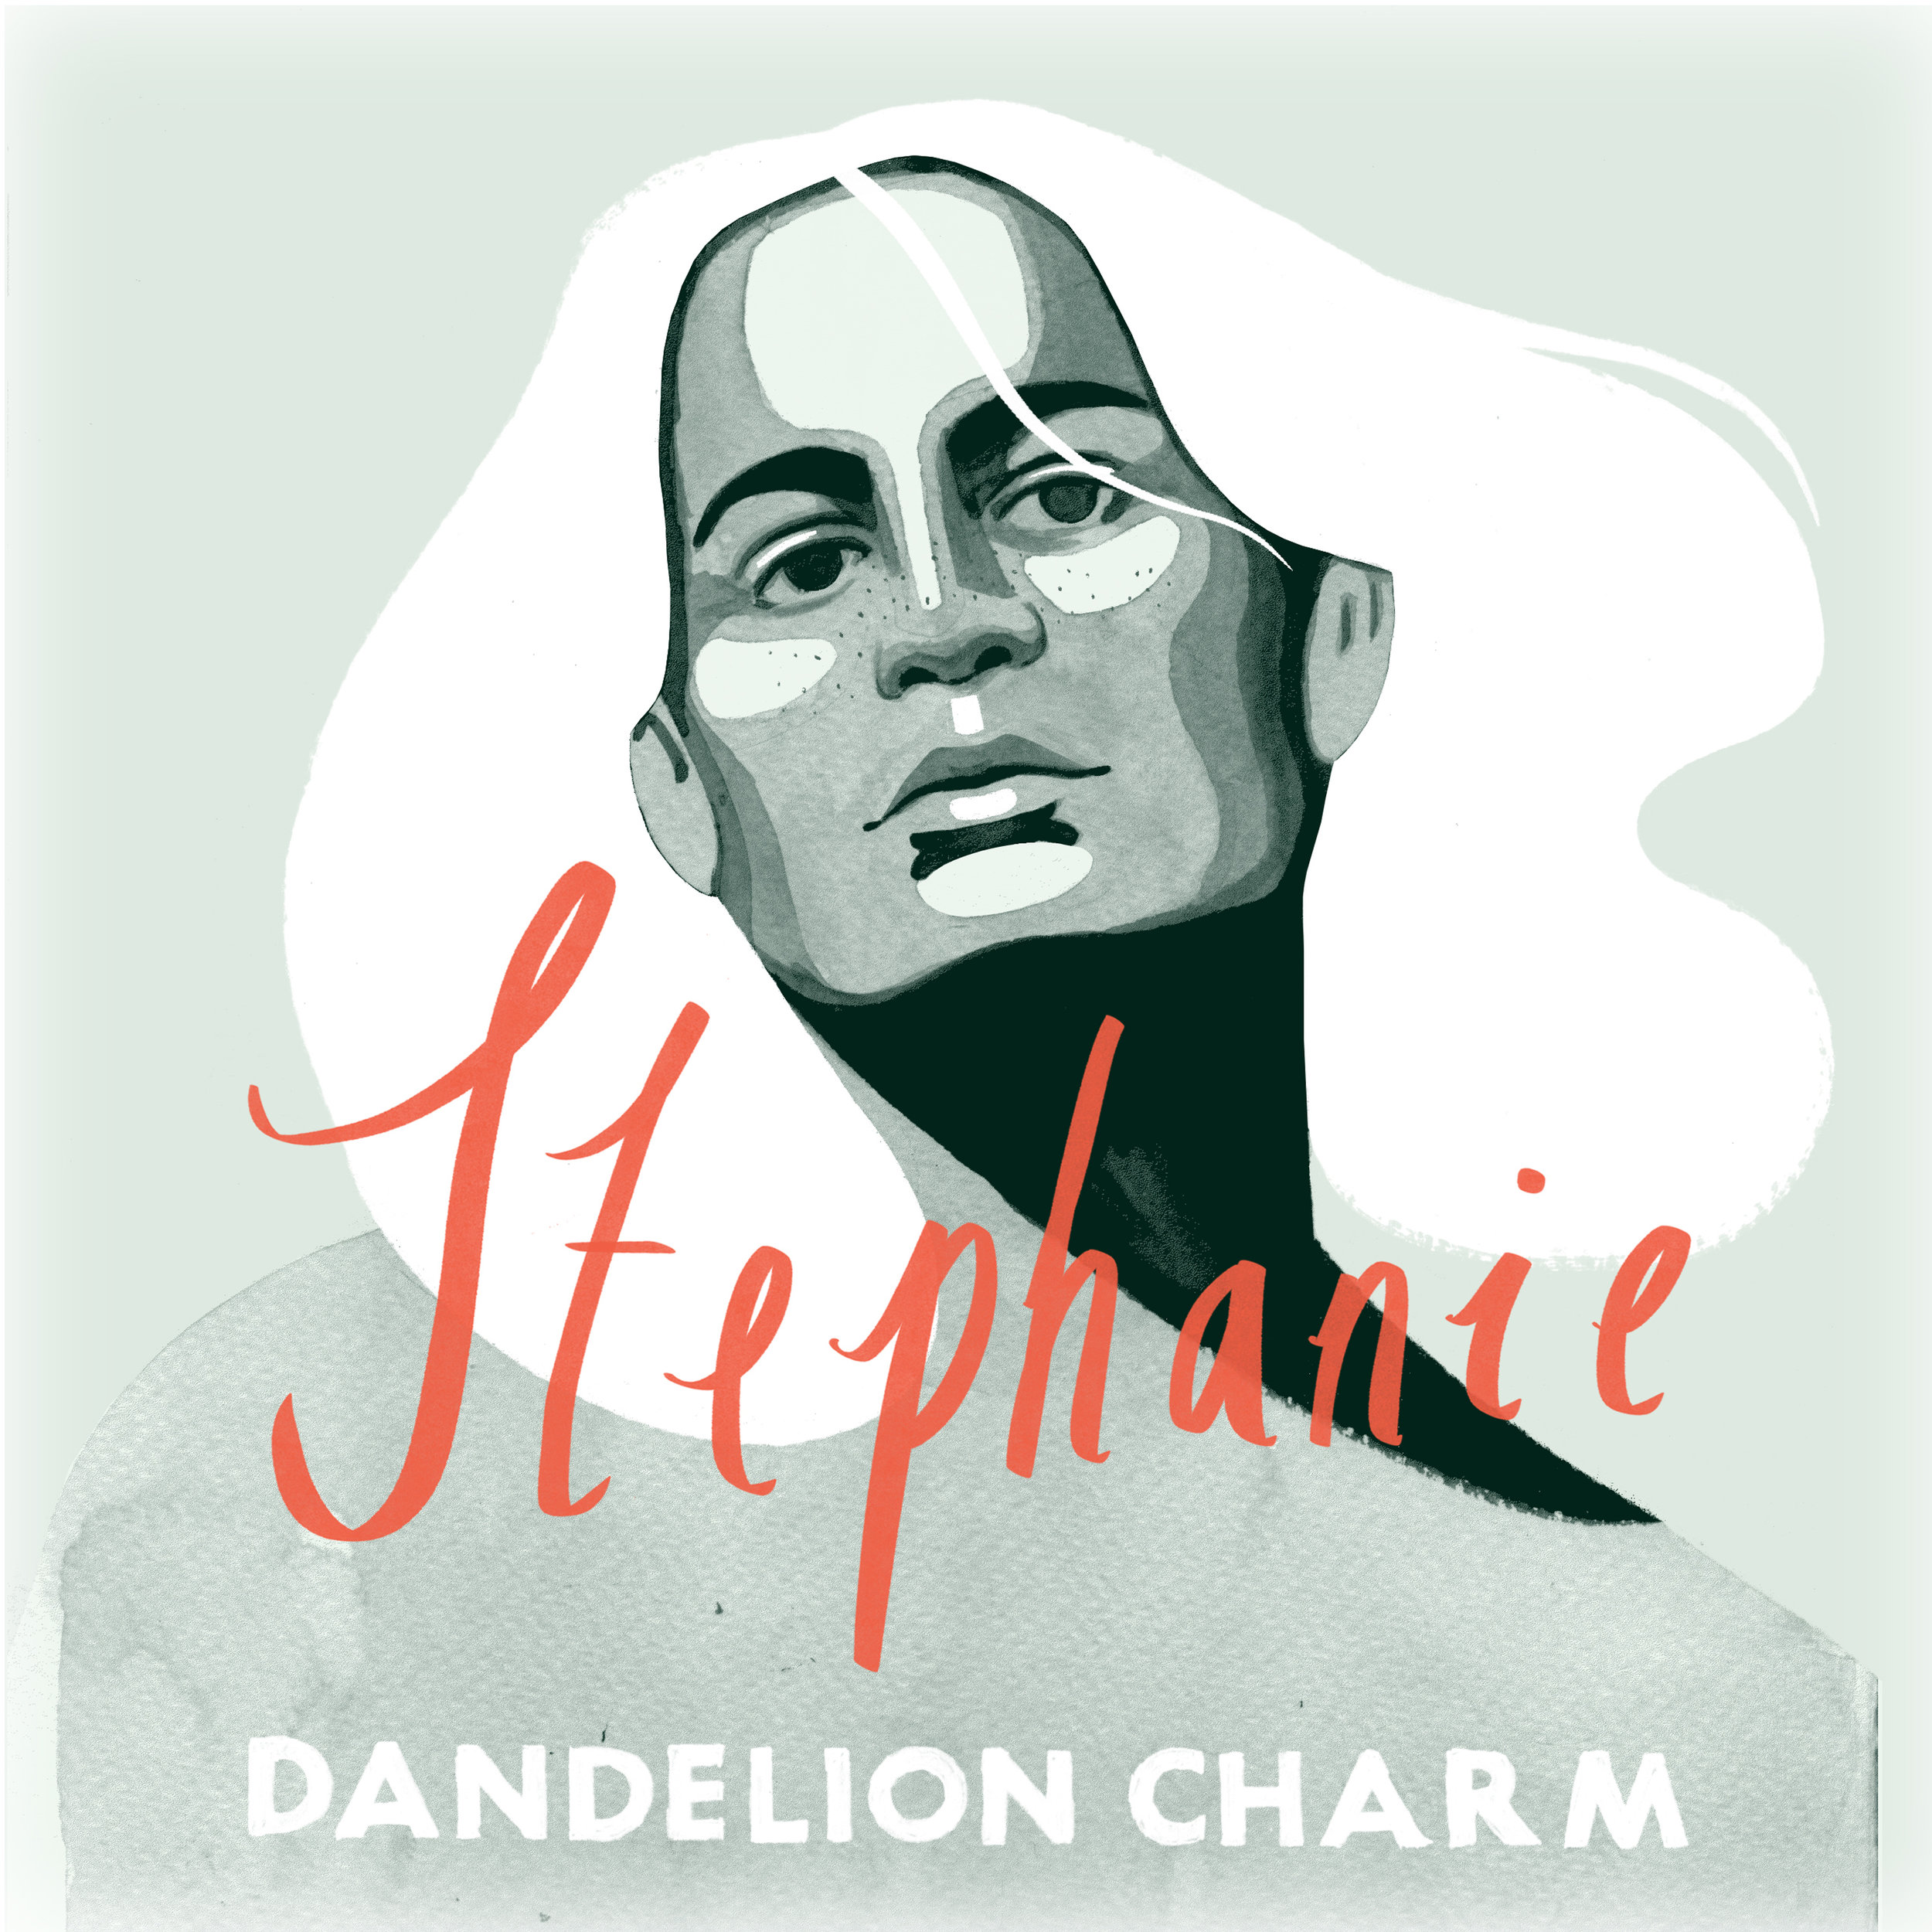 New single 'Stephanie' -